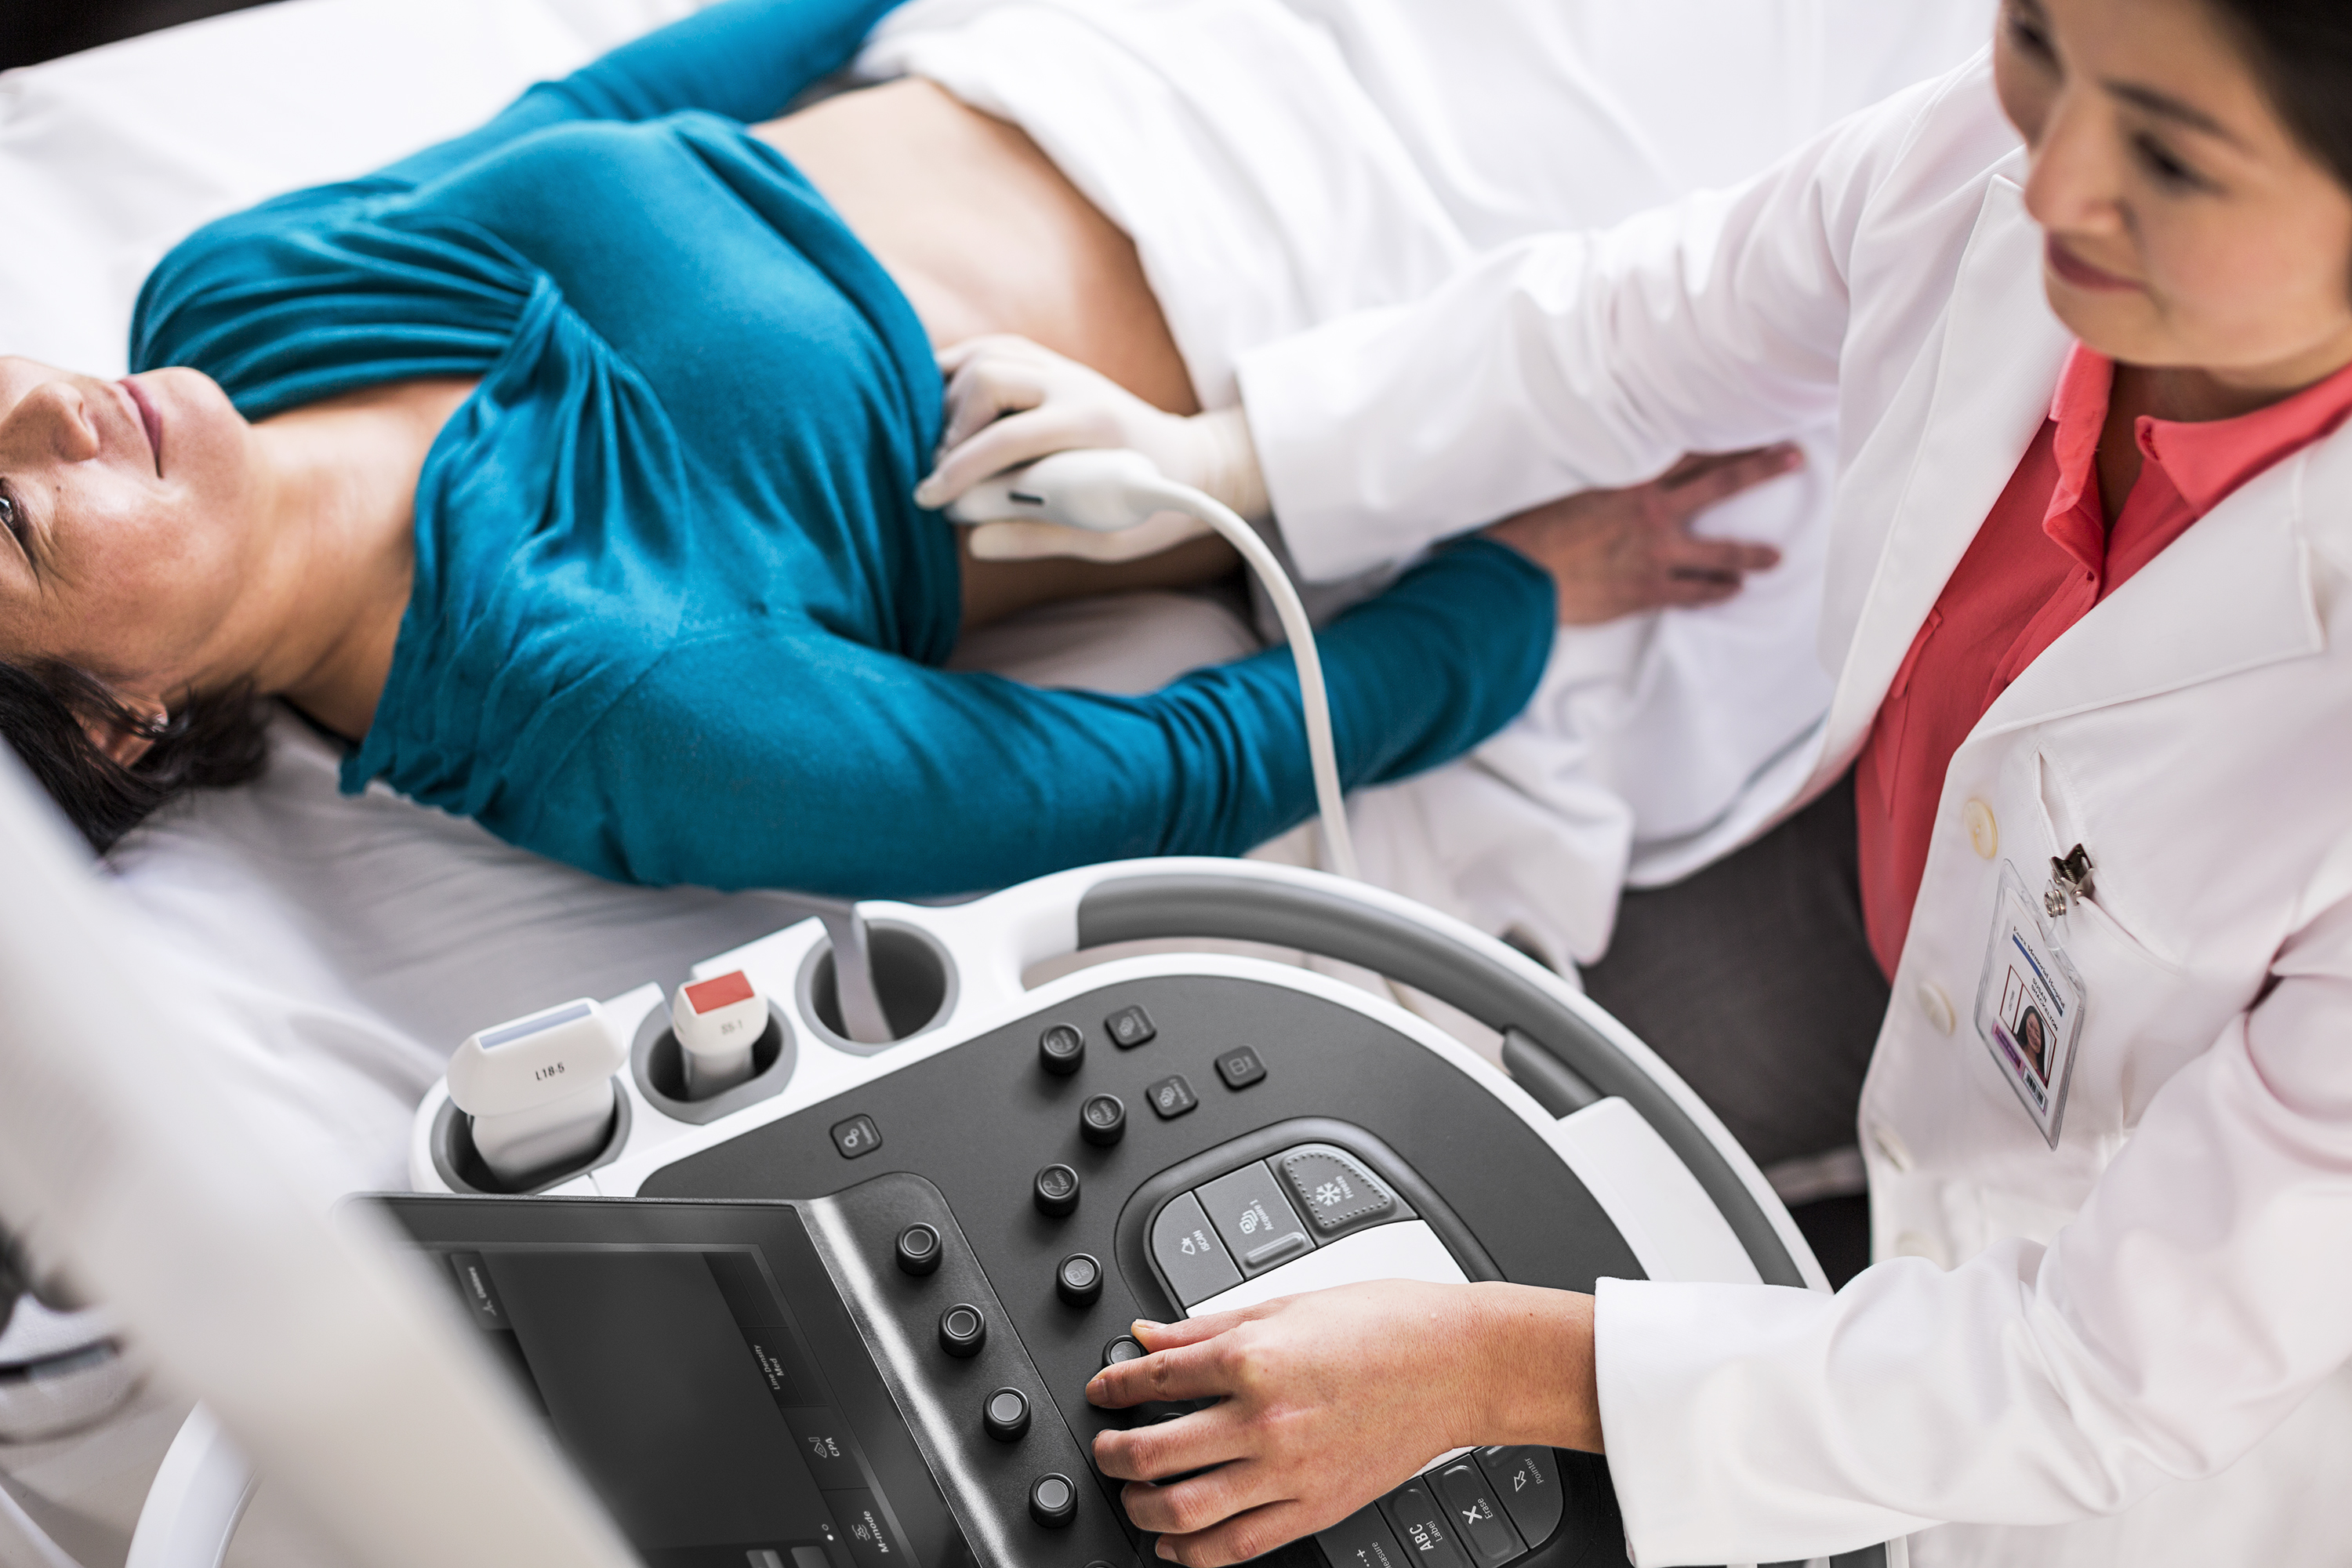 LeQuest partners with Philips for Ultrasound systems